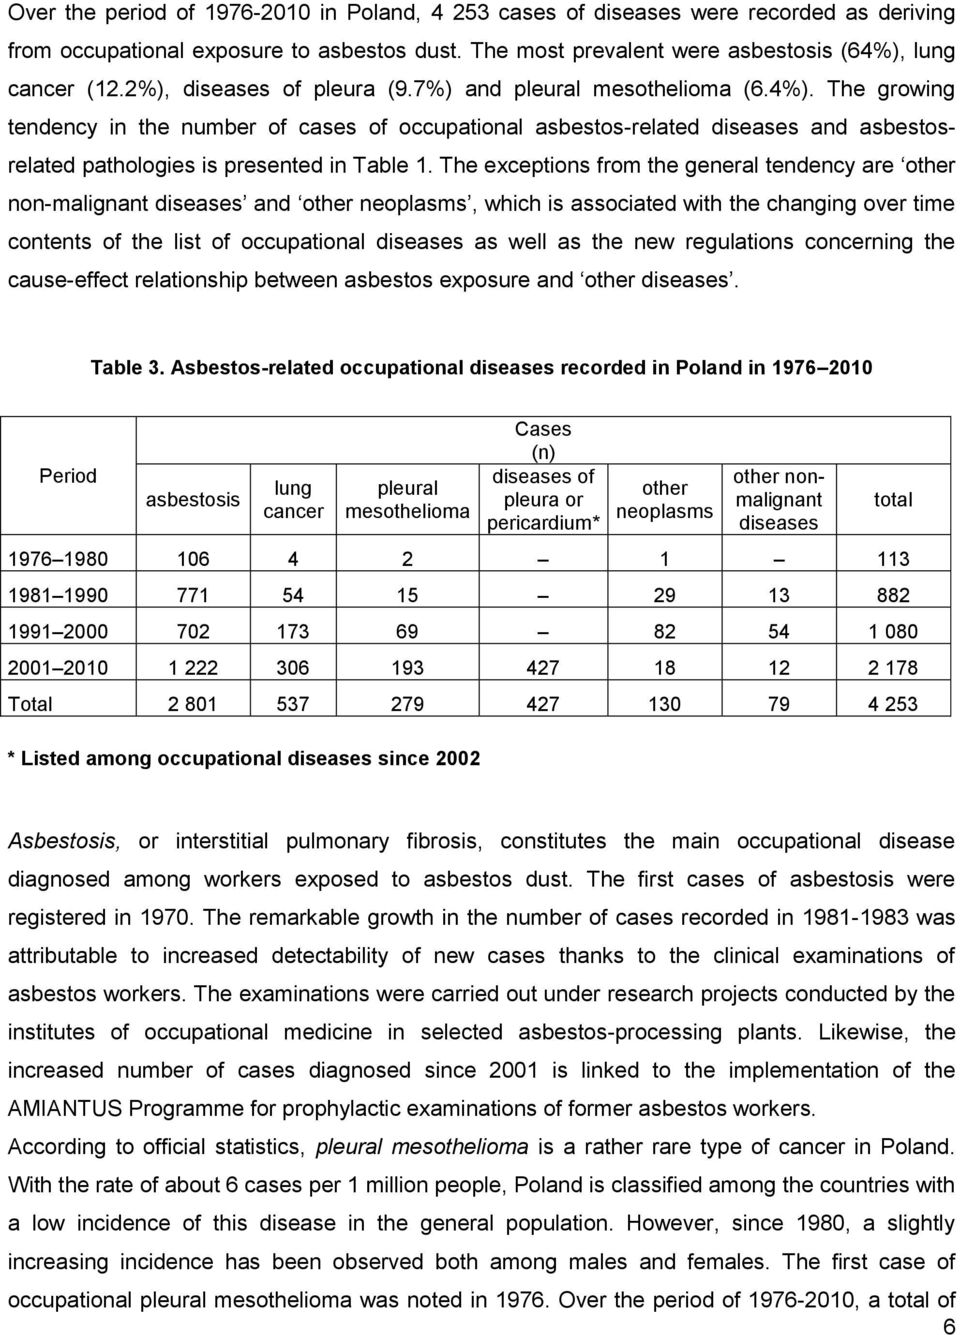 The growing tendency in the number of cases of occupational asbestos-related diseases and asbestosrelated pathologies is presented in Table 1.